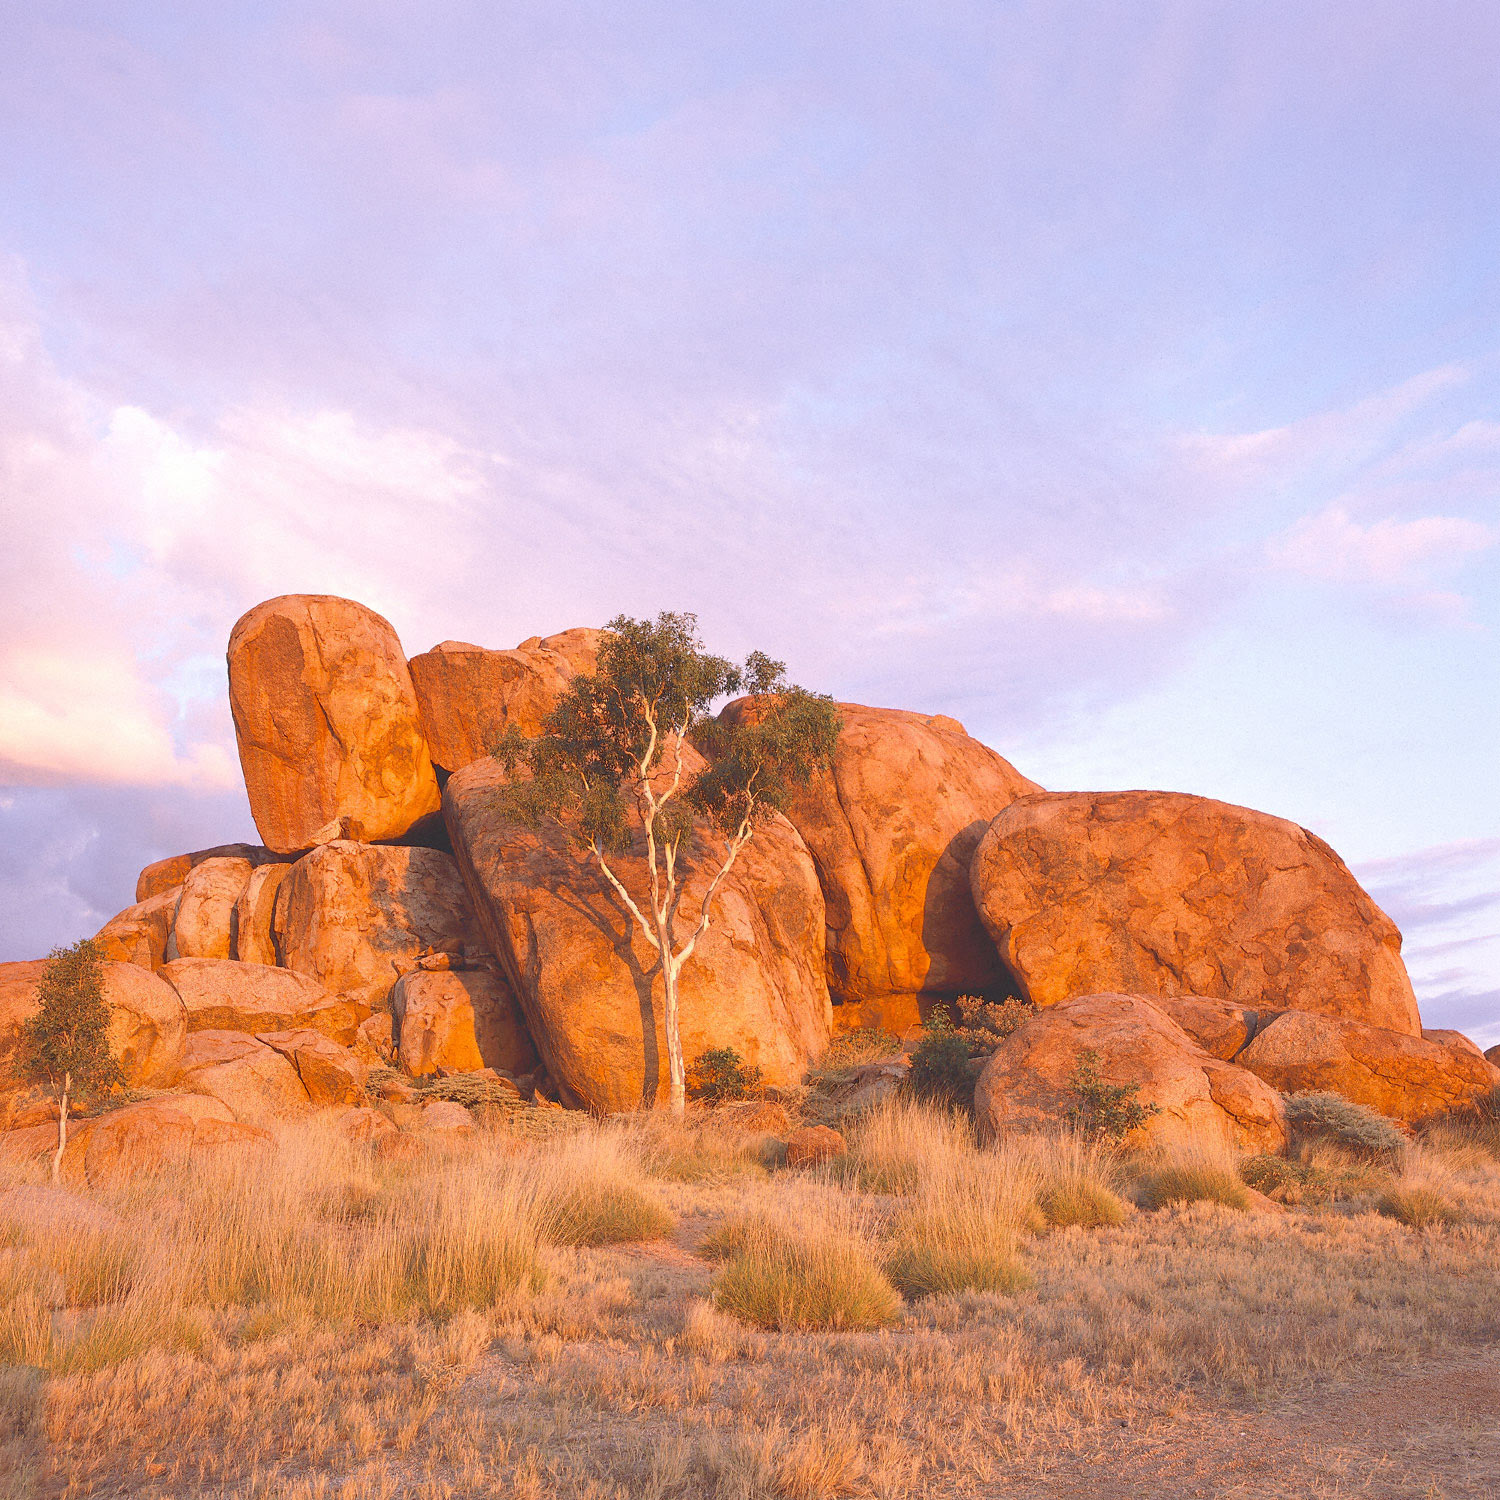 Warren-Hinder-Devils-Marbles.jpg